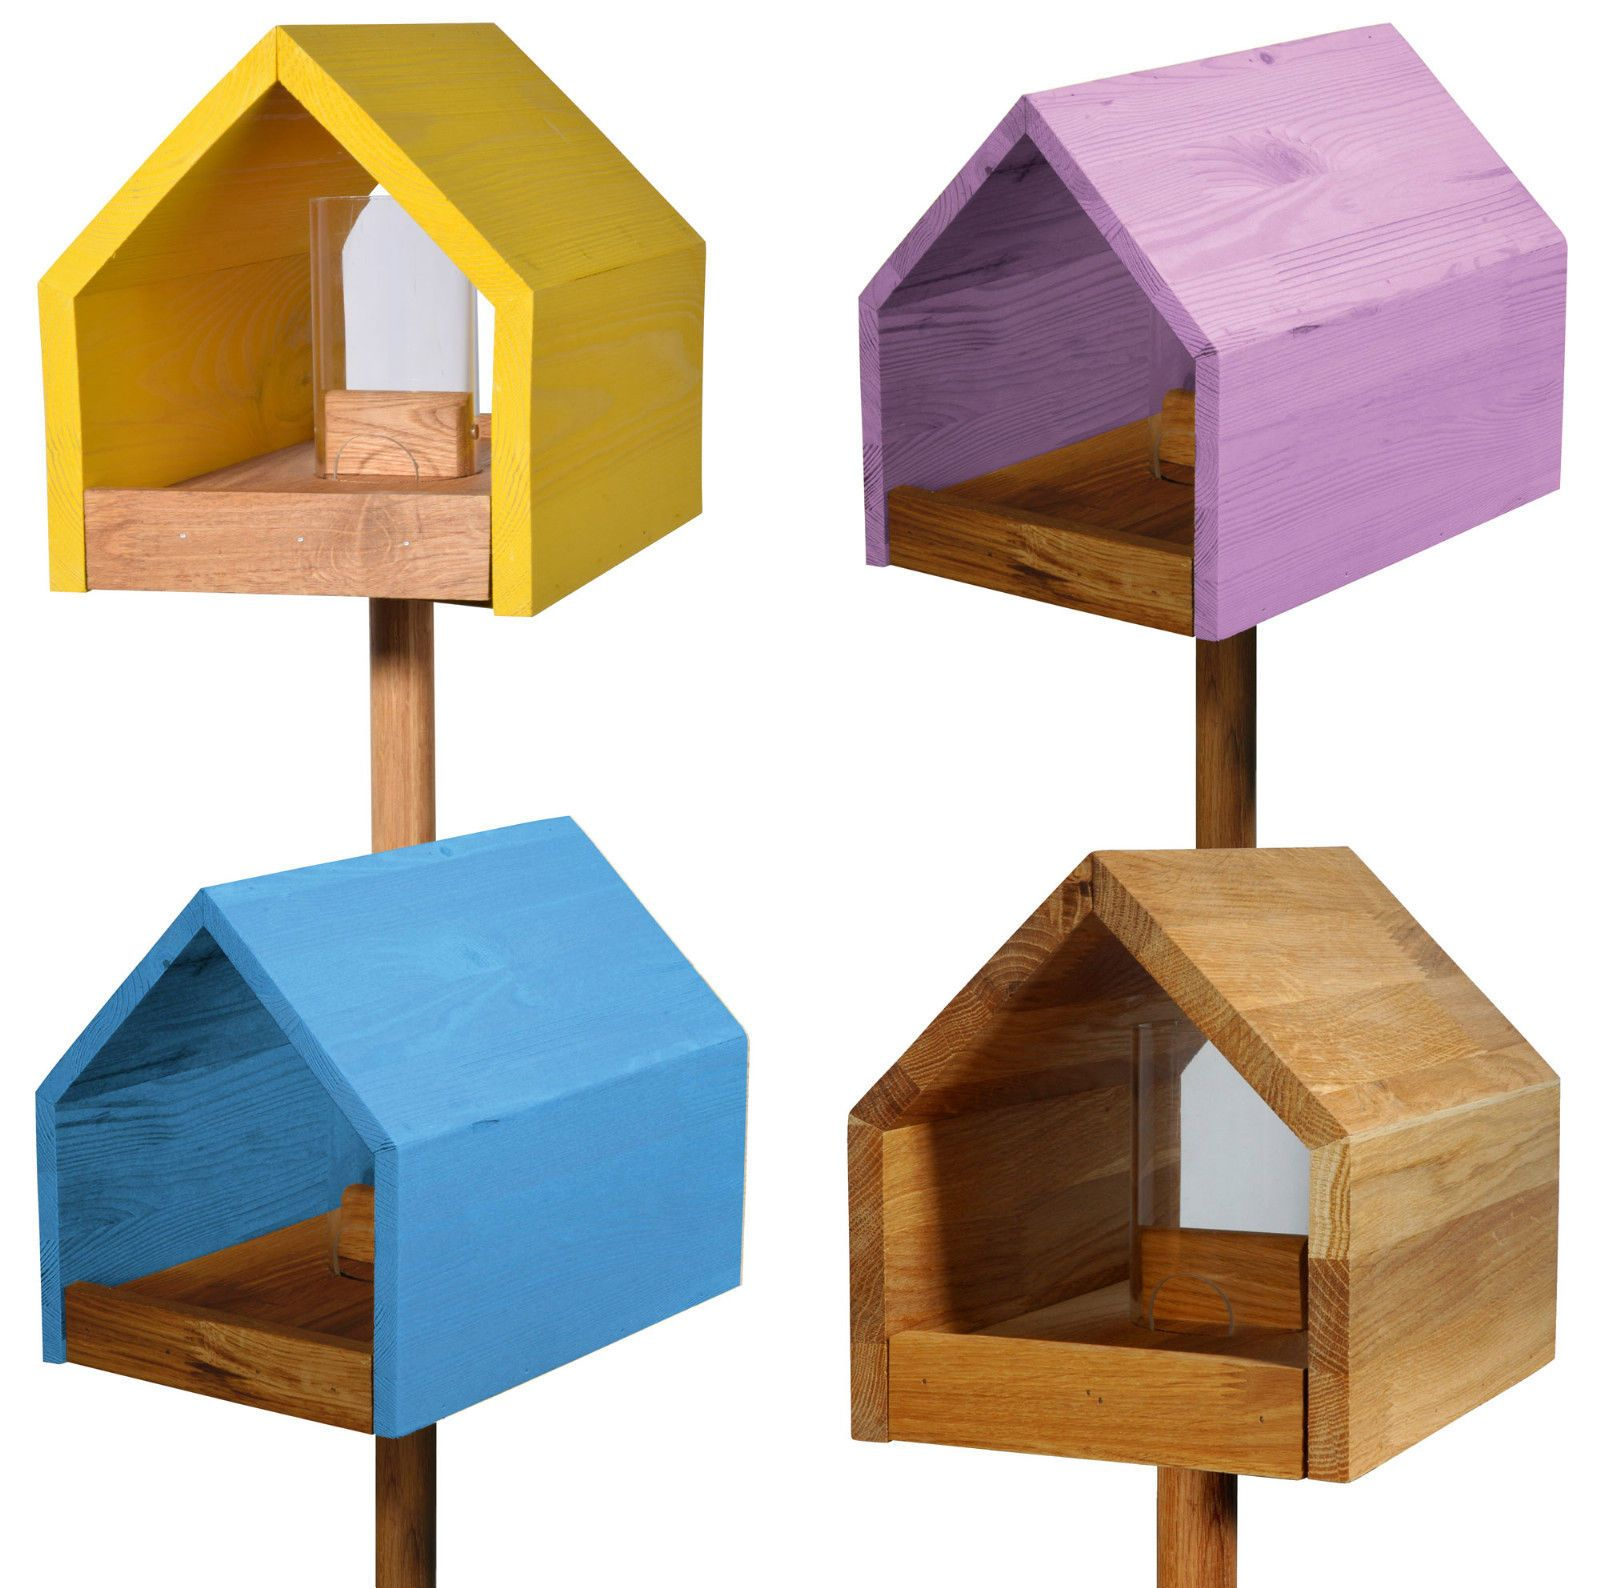 vogelhaus mit st nder eichenholz futterhaus v gel vogelfutterhaus vogelh uschen bird houses. Black Bedroom Furniture Sets. Home Design Ideas